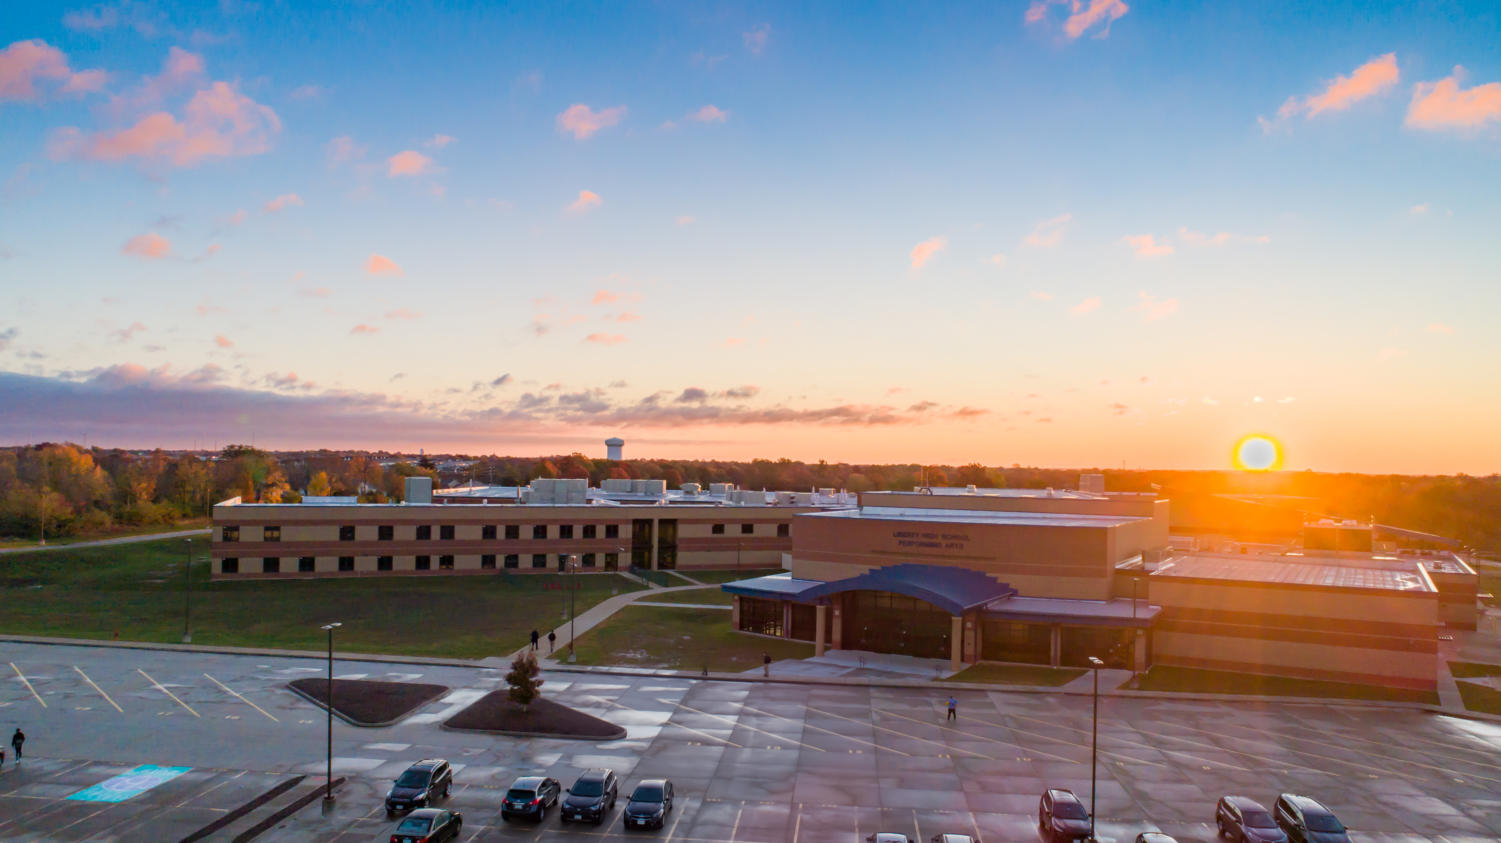 The sun is rising over Liberty, creating a beautiful scenery.